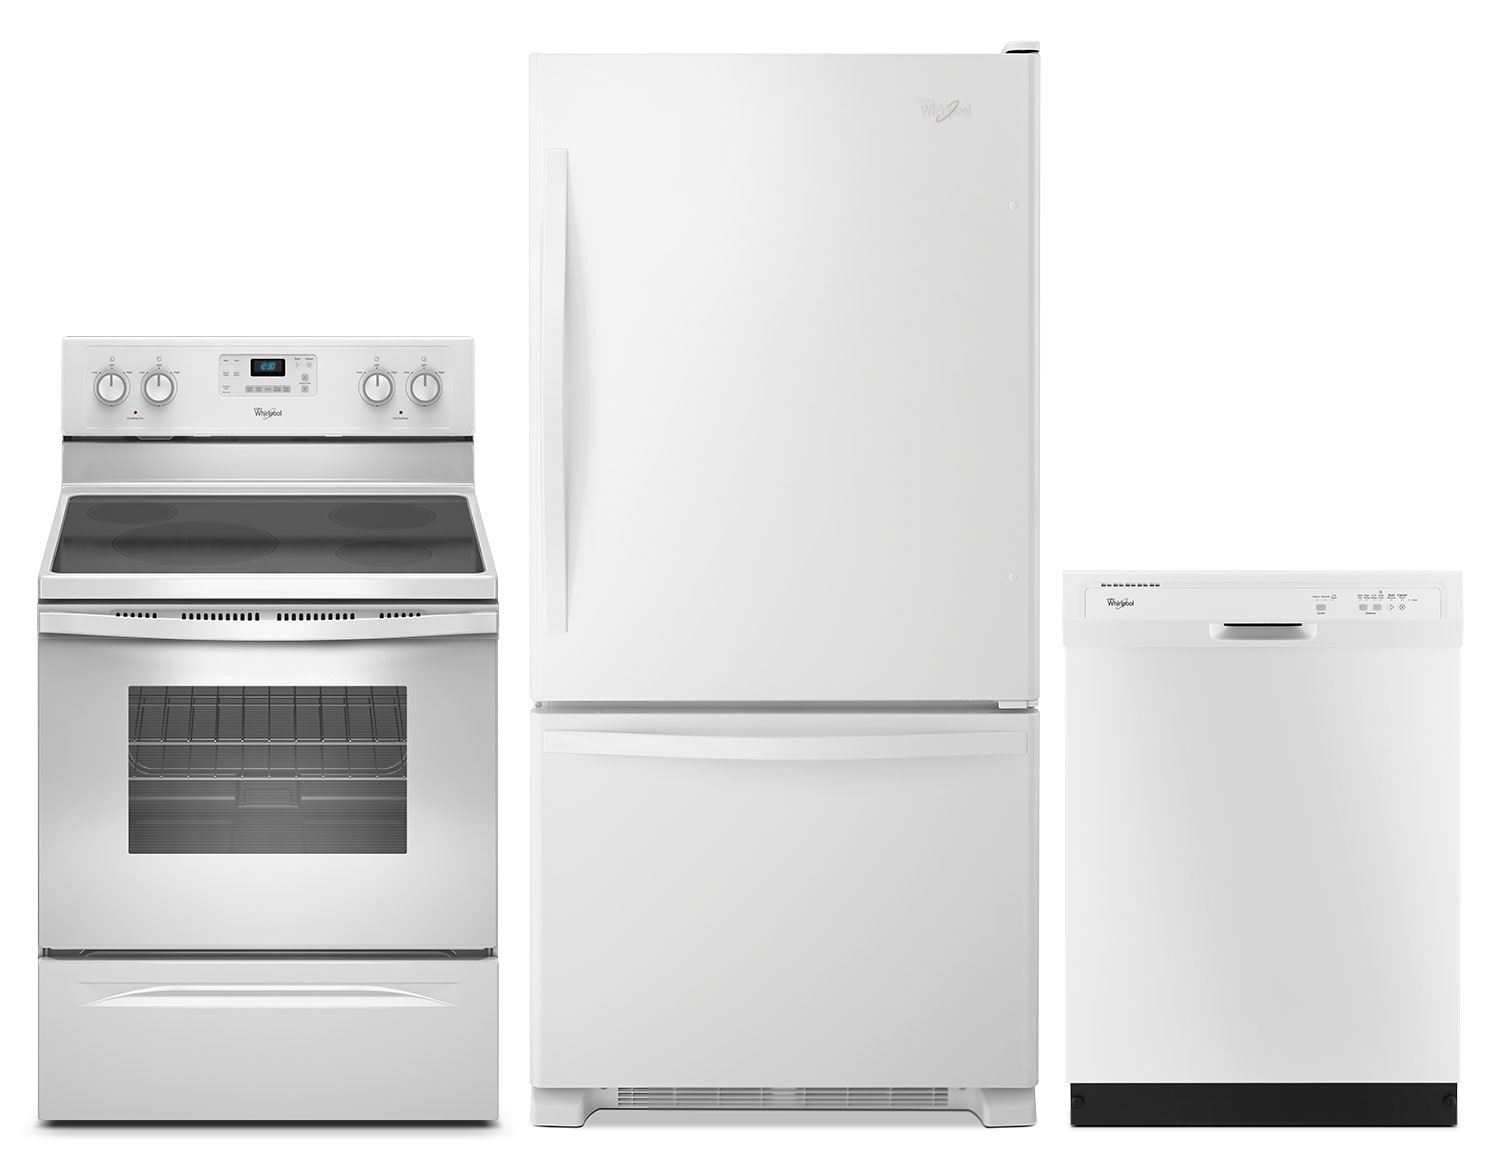 Cooking Products - Whirlpool® 18.5 Cu. Ft. Refrigerator, 4.8 Cu. Ft. Electric Range and Dishwasher Package